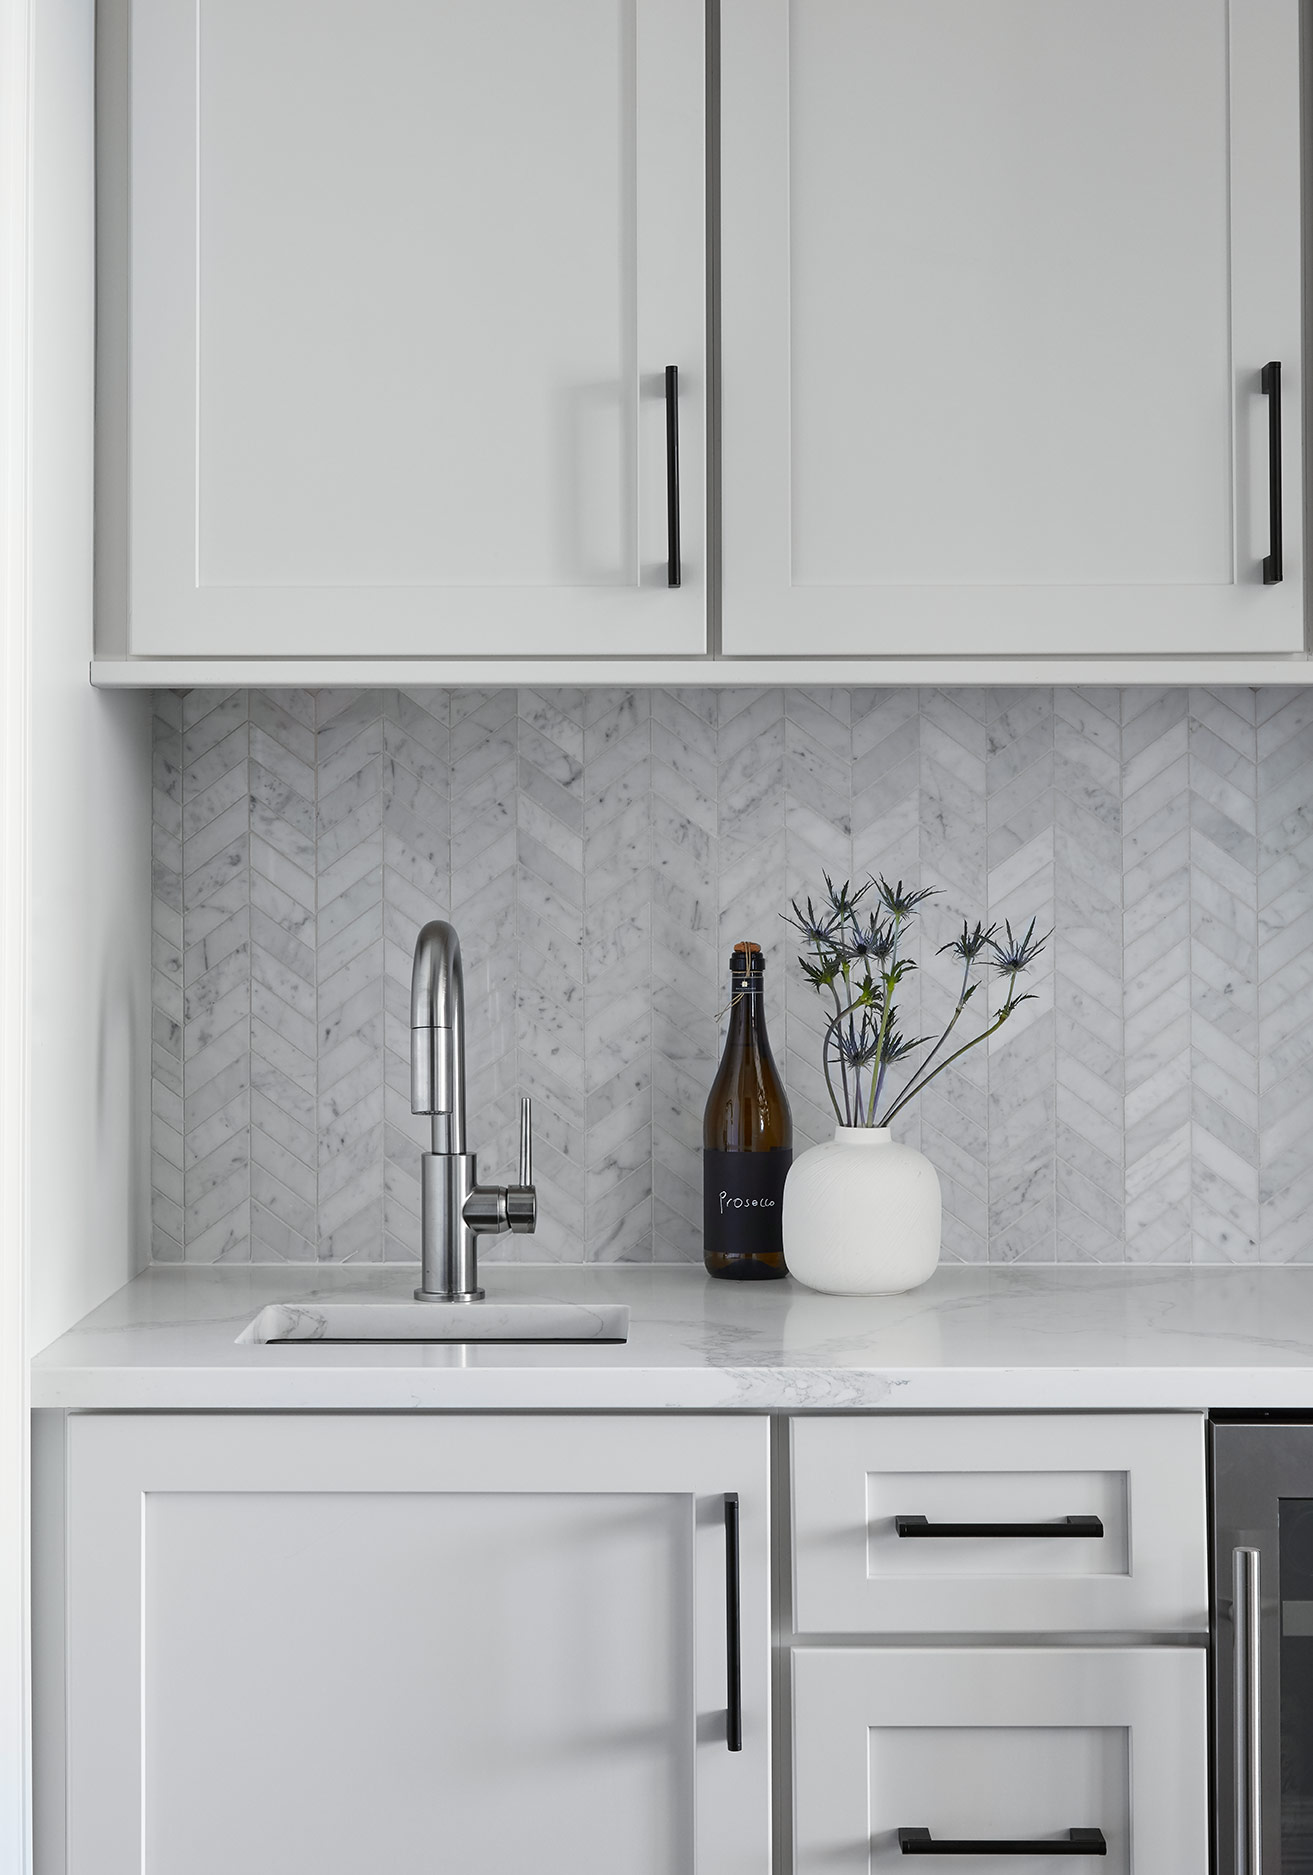 In the Butler's Pantry, we carried in the same white cabinets from the island as well as the same cabinet pulls, but in a matte black to keep things cohesive yet inject some interest in this small area. The herringbone marble backsplash carries in the texture from the kitchen backsplash and counters and ties into the pattern introduced in the entryway floor.